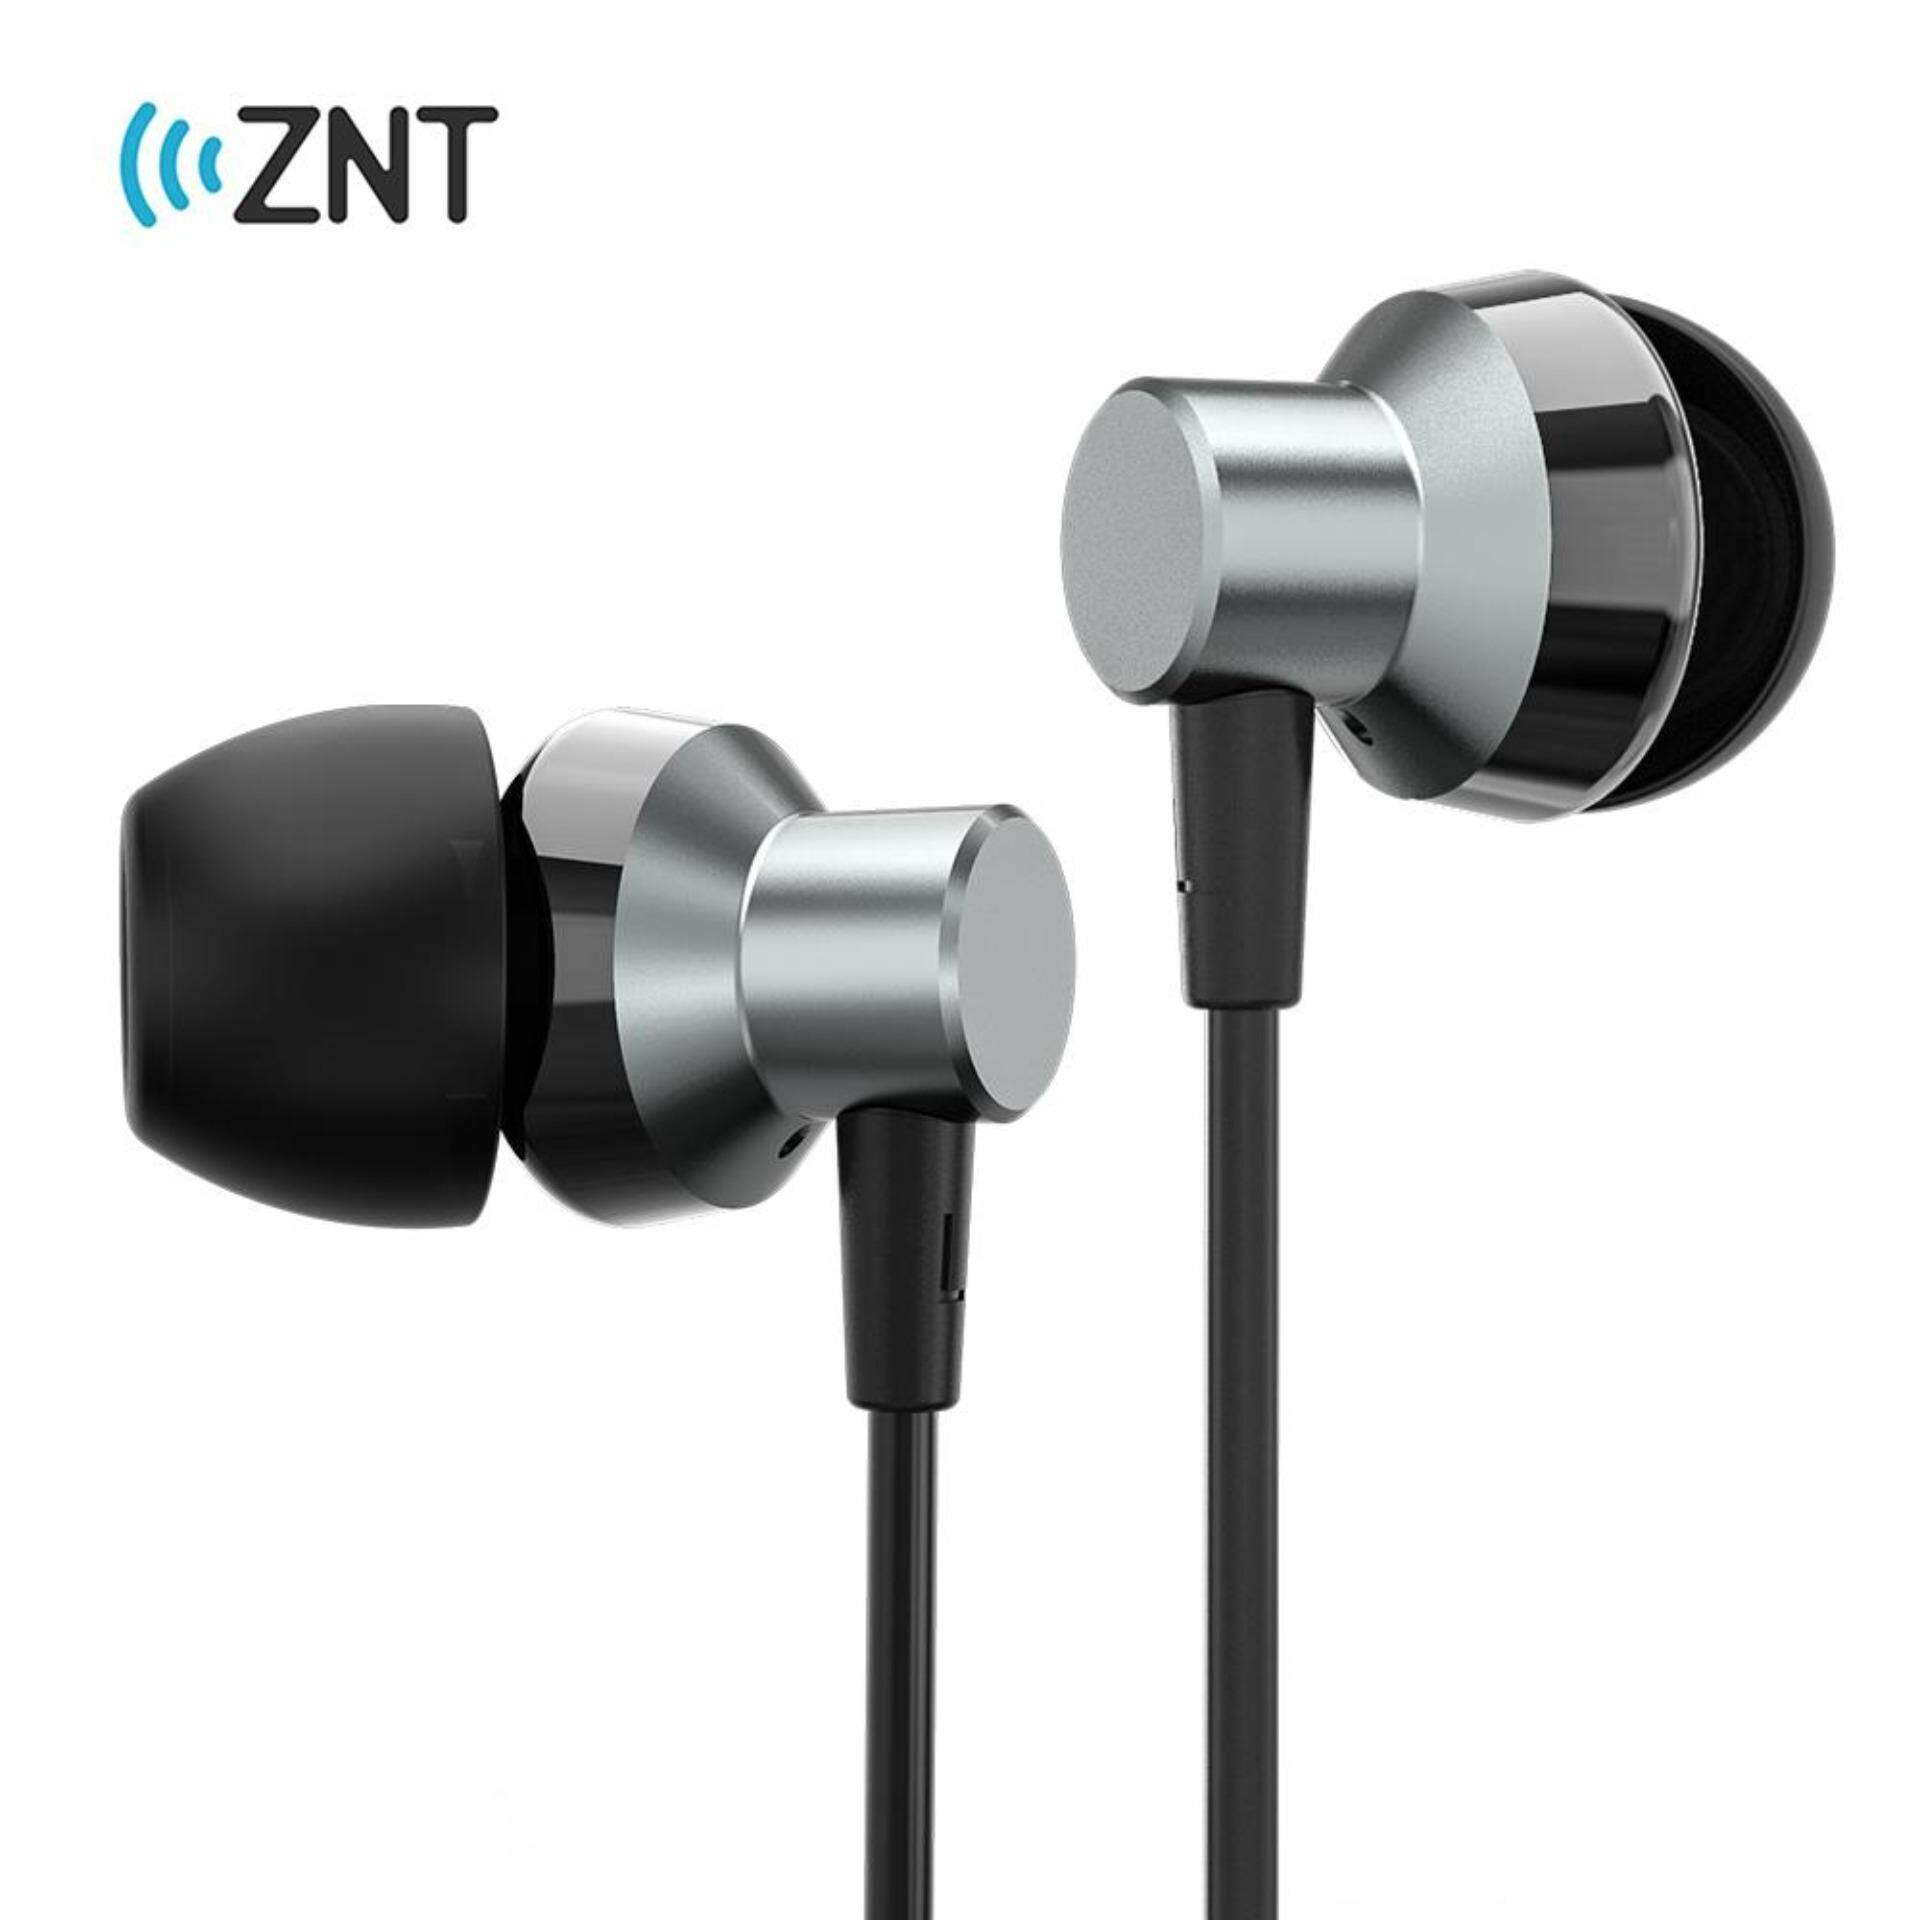 25e2fce0a036db 【New】ZNT R620 In-ear Earphone High Quality 3.5 mm Headphone with Microphone